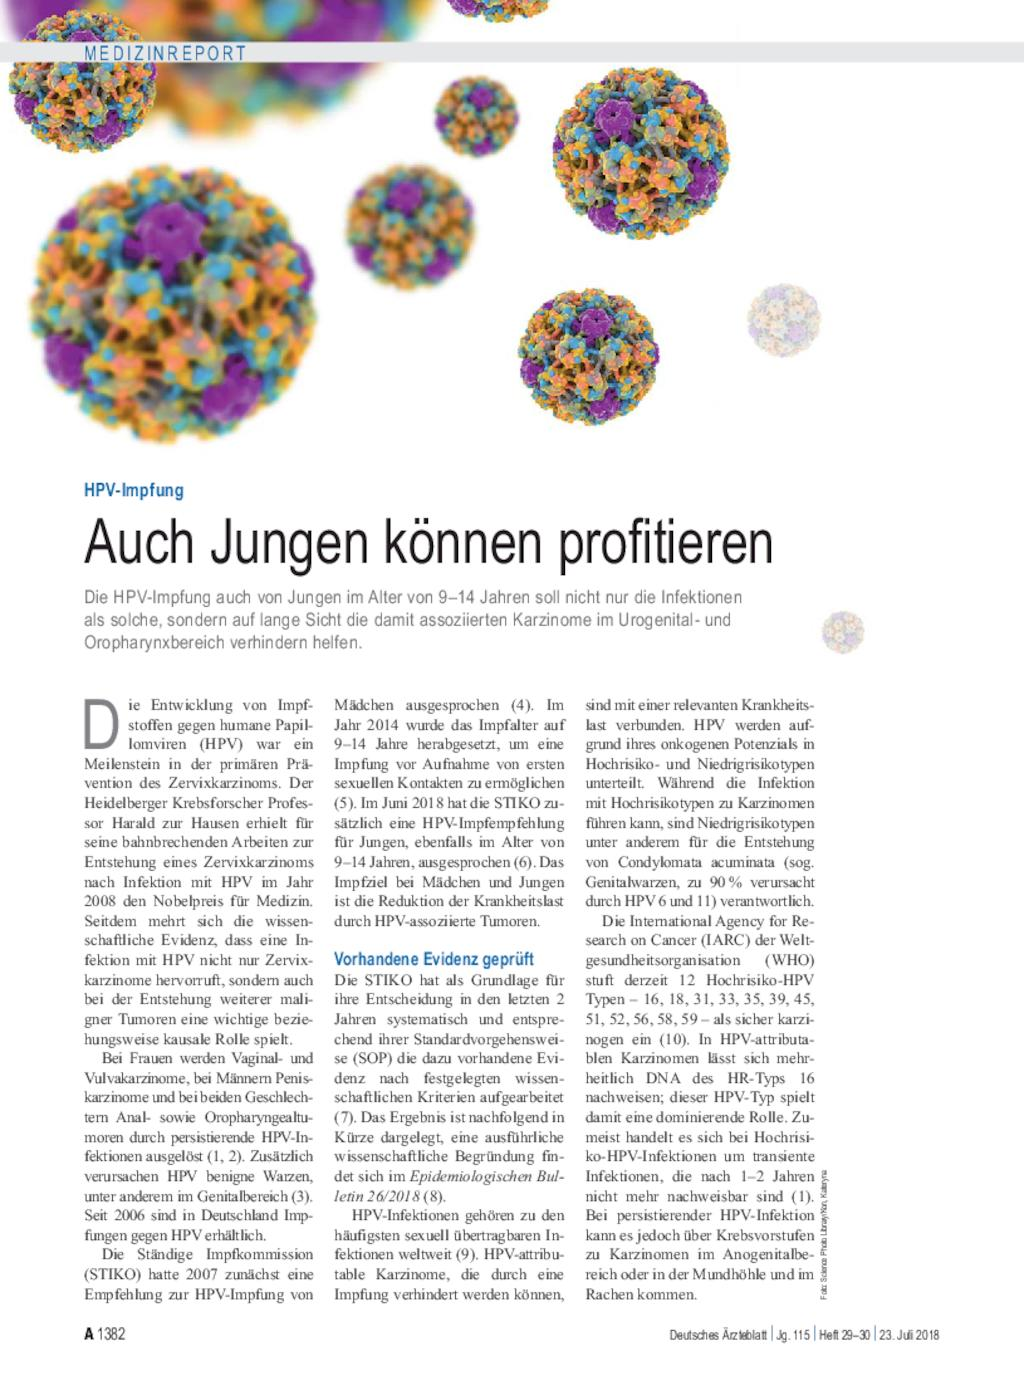 hpv impfung jungen alter ovarian cancer young age